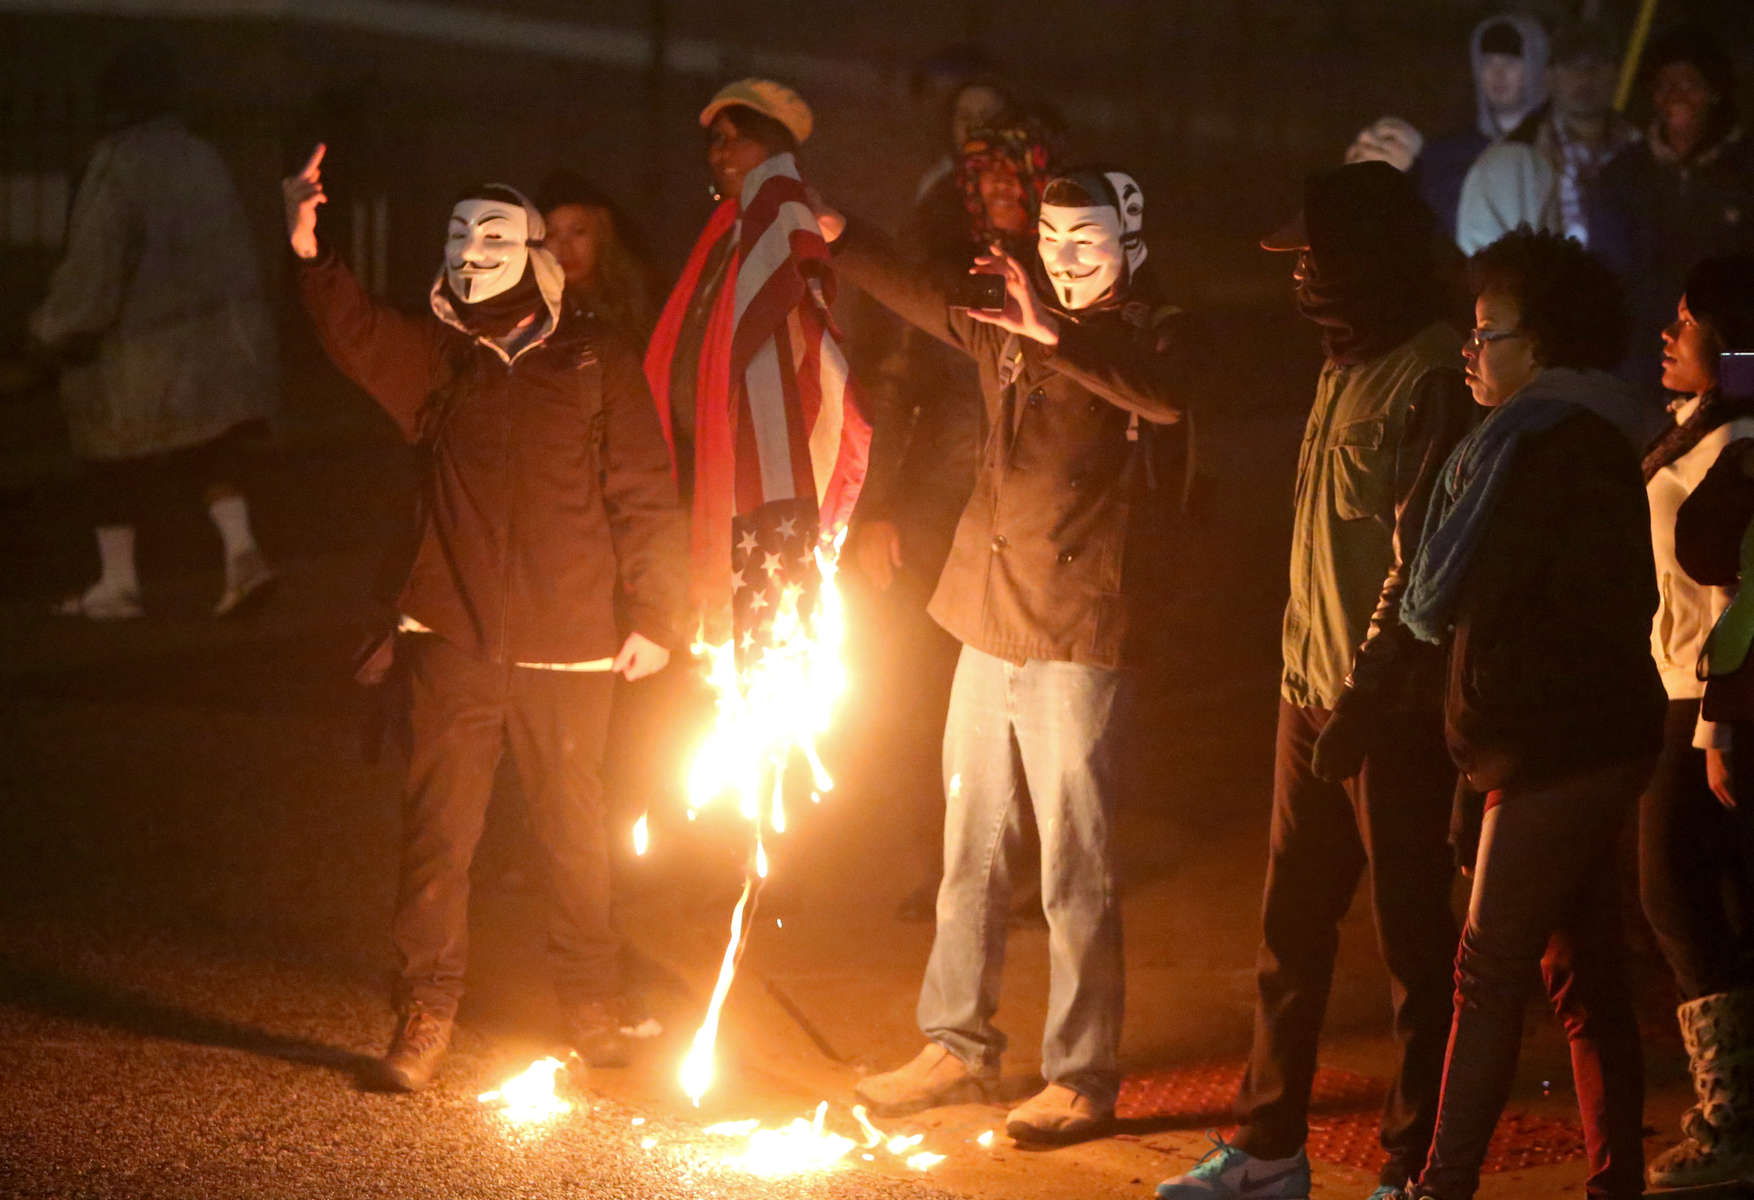 Protesters burn an American flag across the street from the Ferguson police department to taunt National Guard troops and police lined up outside the station on Thursday, Dec. 4. 2014.  After the flag burned protesters threw the flag on the ground and National Guard troops walked across the street and picked up the charred remnants of flag so they could properly dispose of it.Photo By David Carson, dcarson@post-dispatch.com